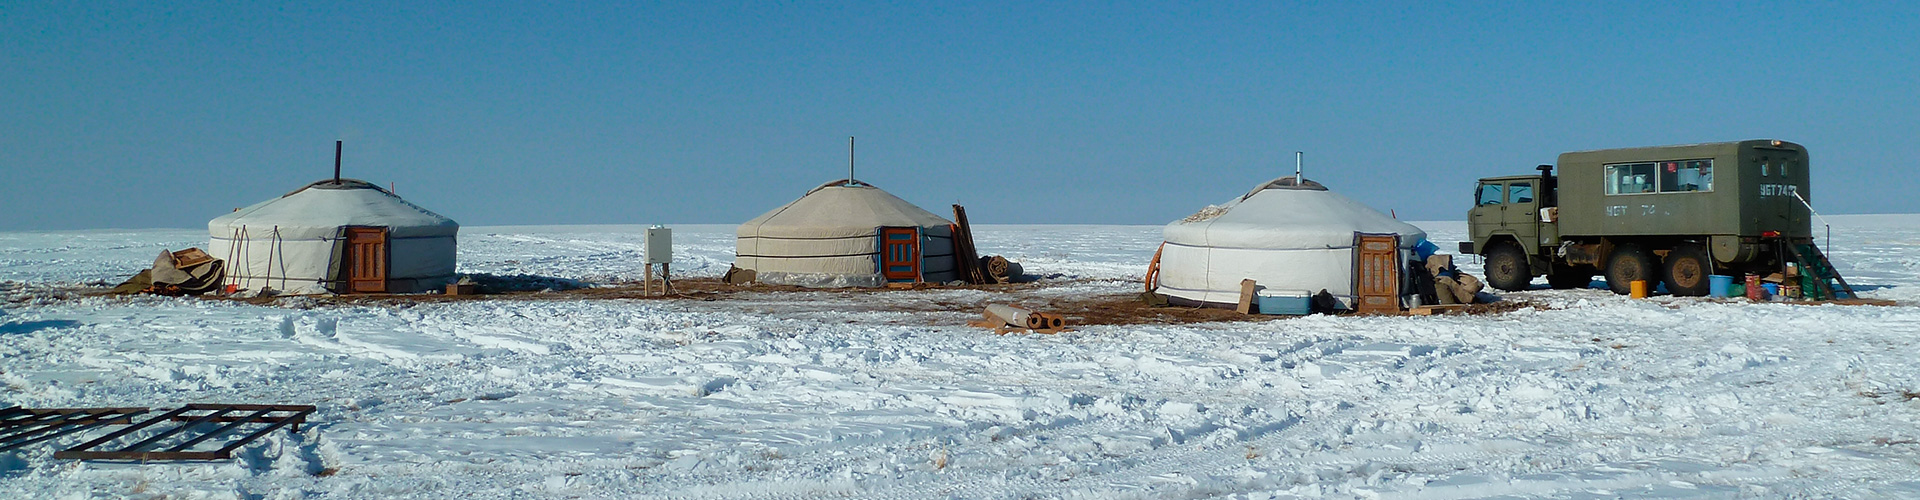 Exploration Camp in Dariganga during the winter.